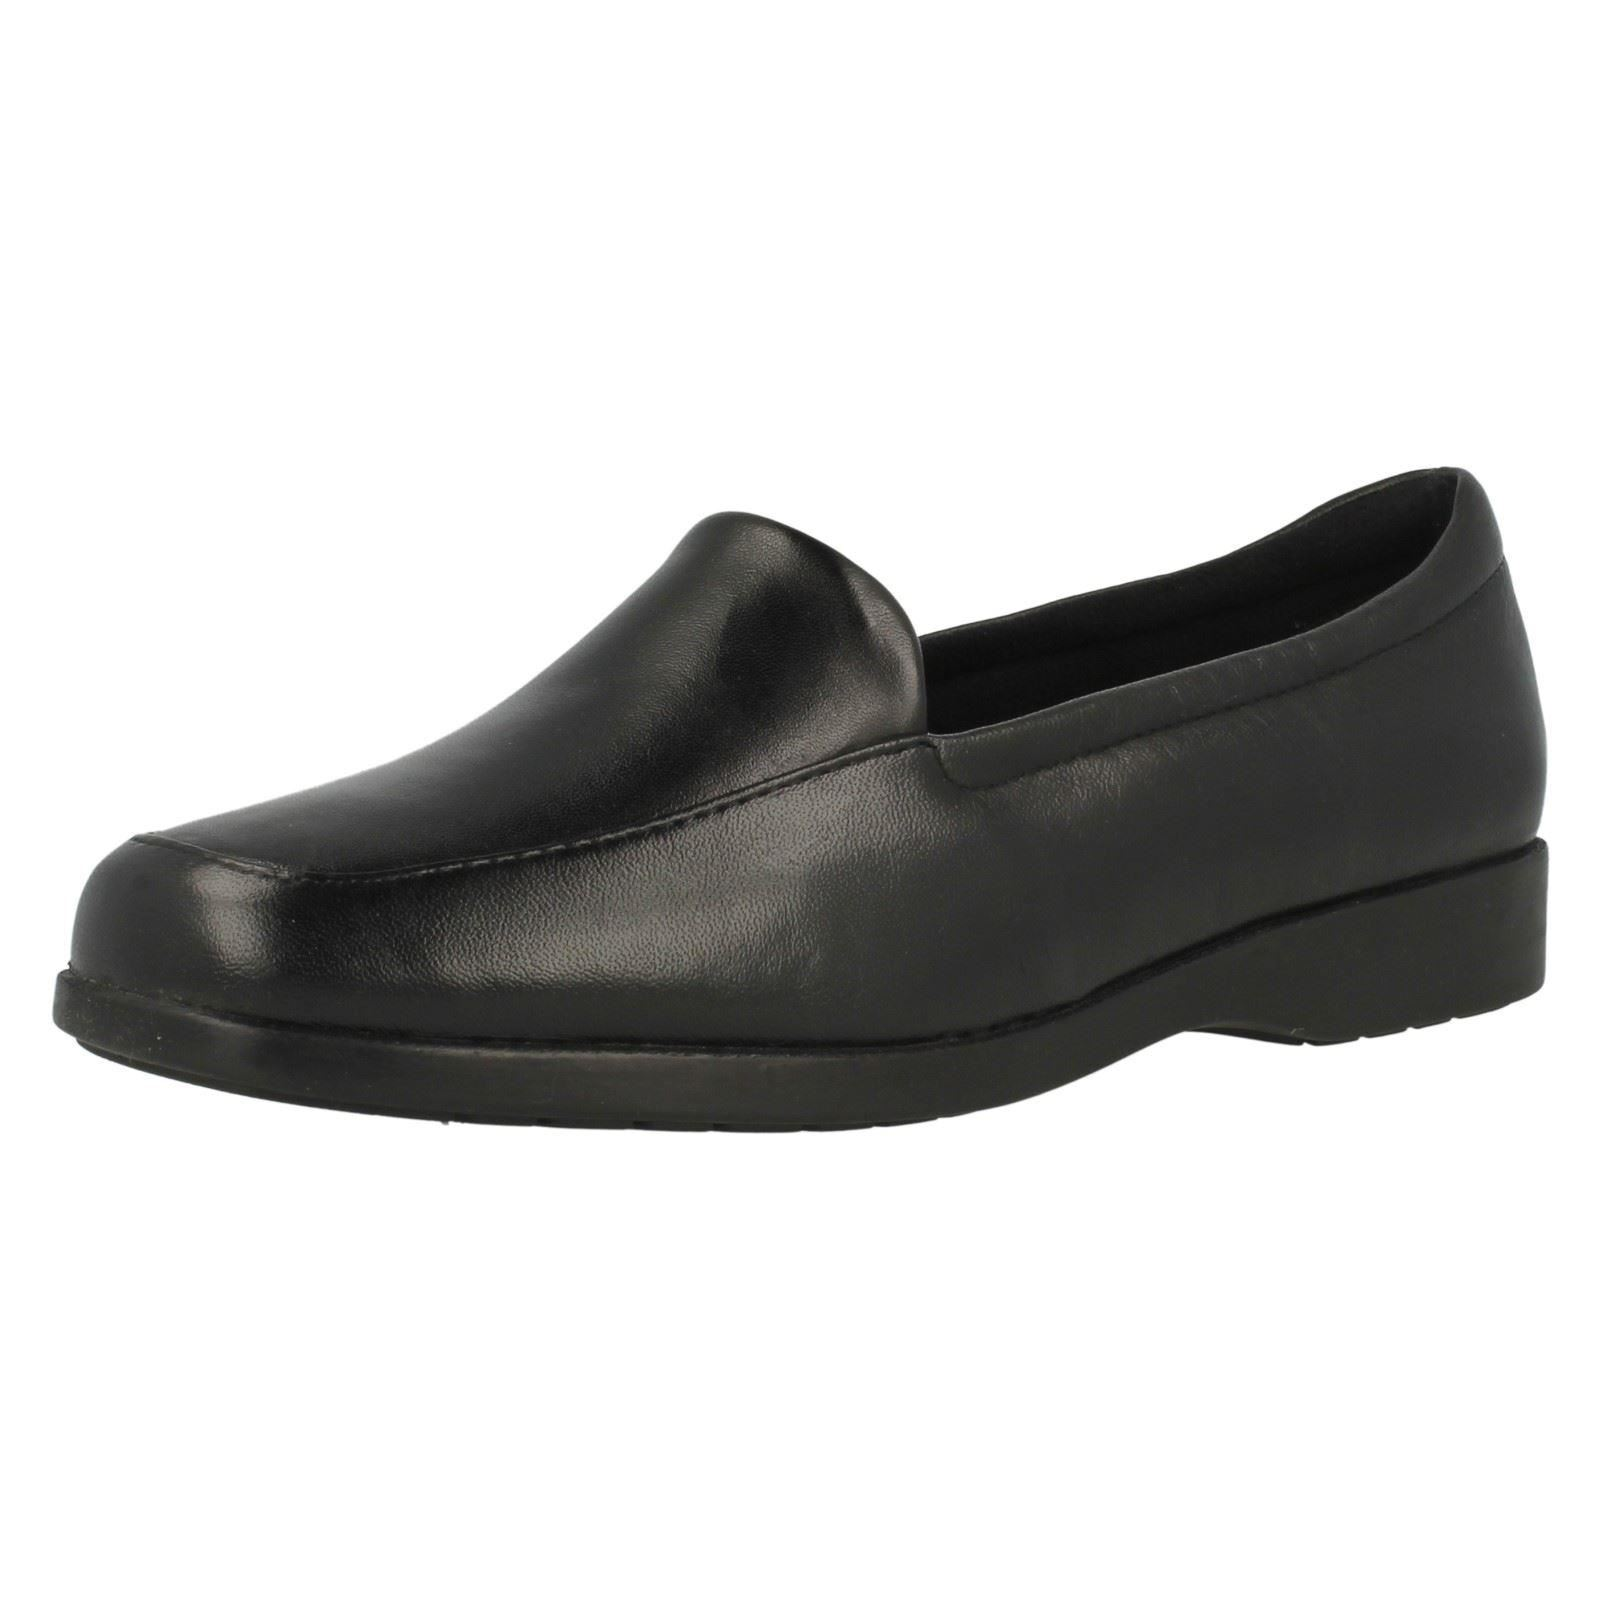 Ladies Clarks Neenah Poppy Leather Smart Slip On Pumps